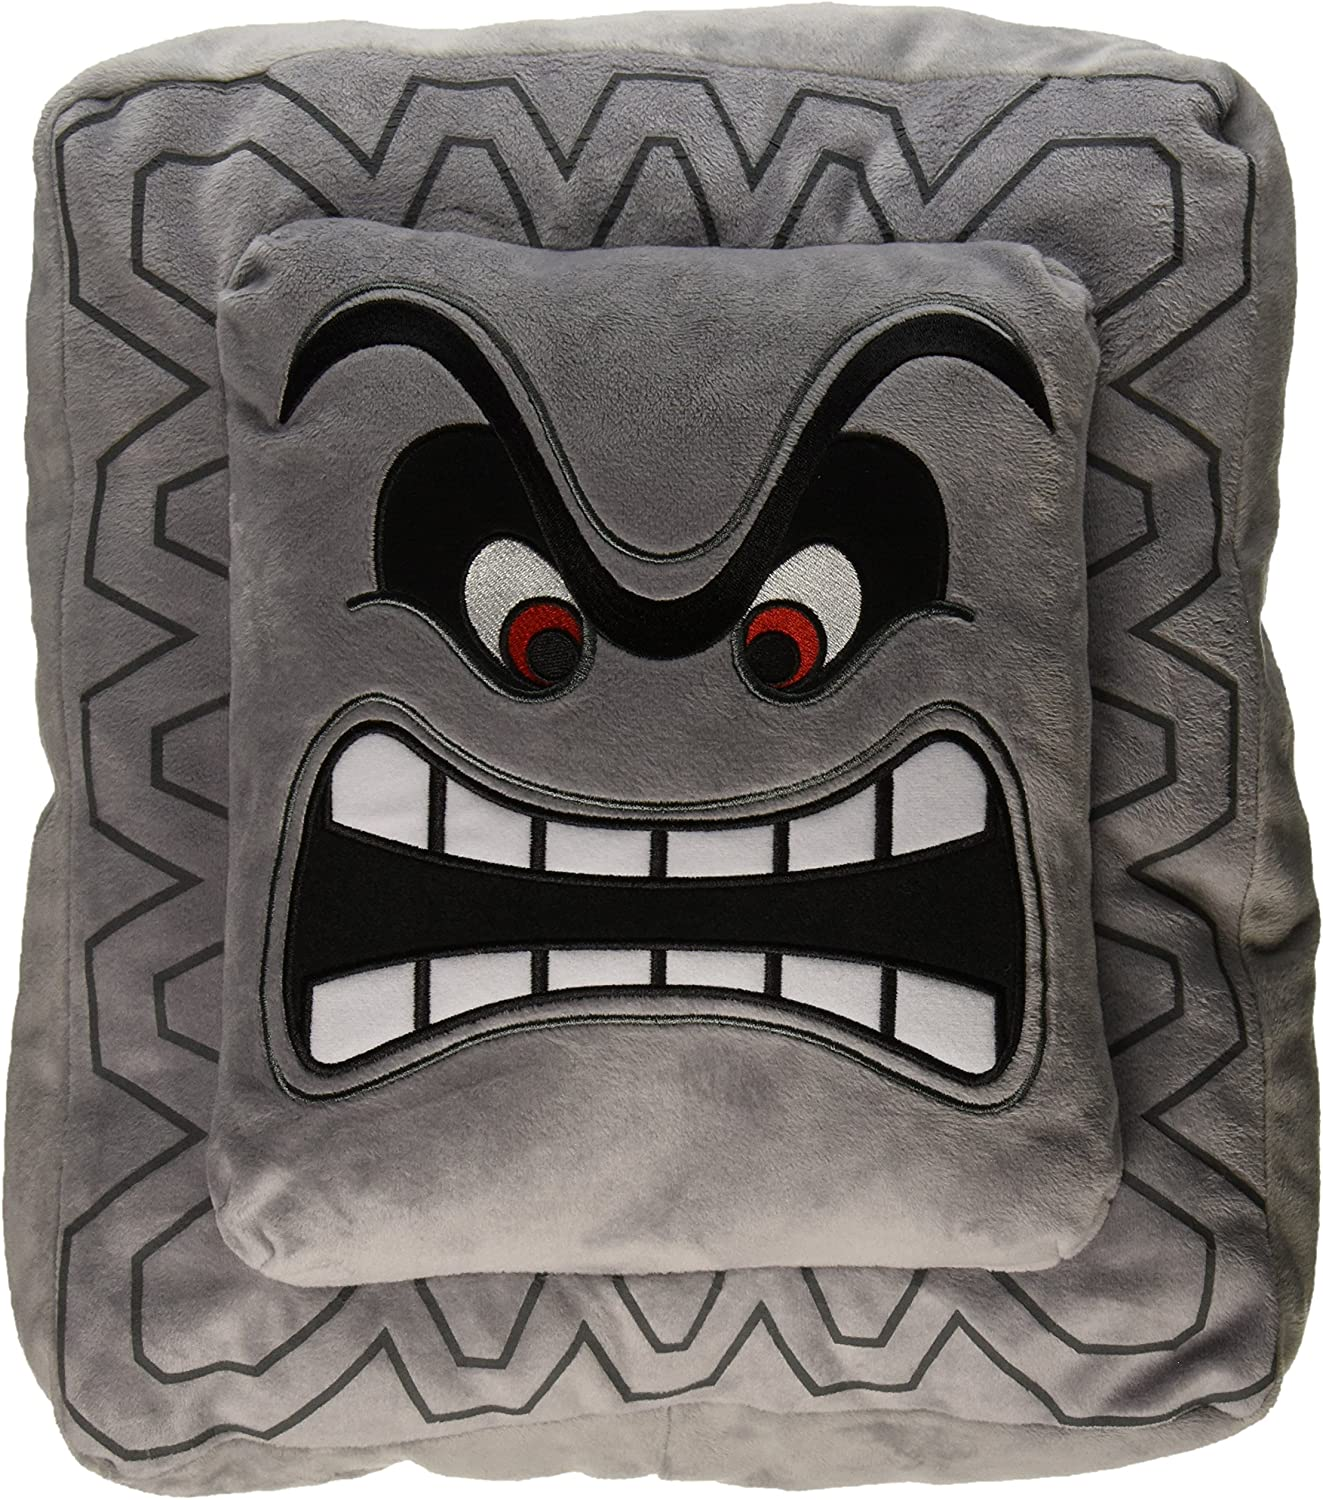 Nintendo Official Super Mario Thwomp Cushion/Pillow Plush, 12""